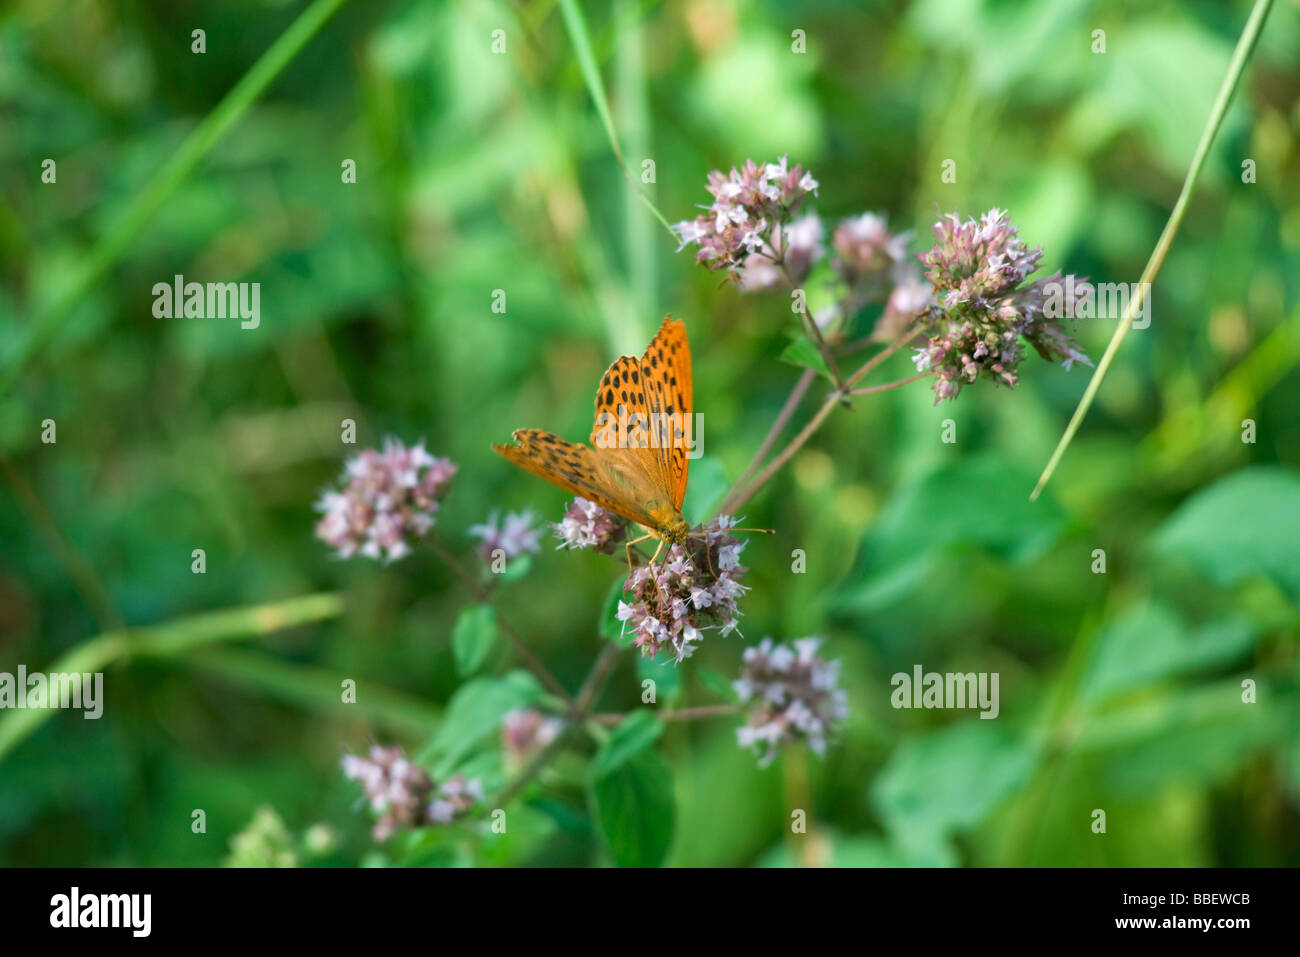 Orange butterfly on flowering plant - Stock Image